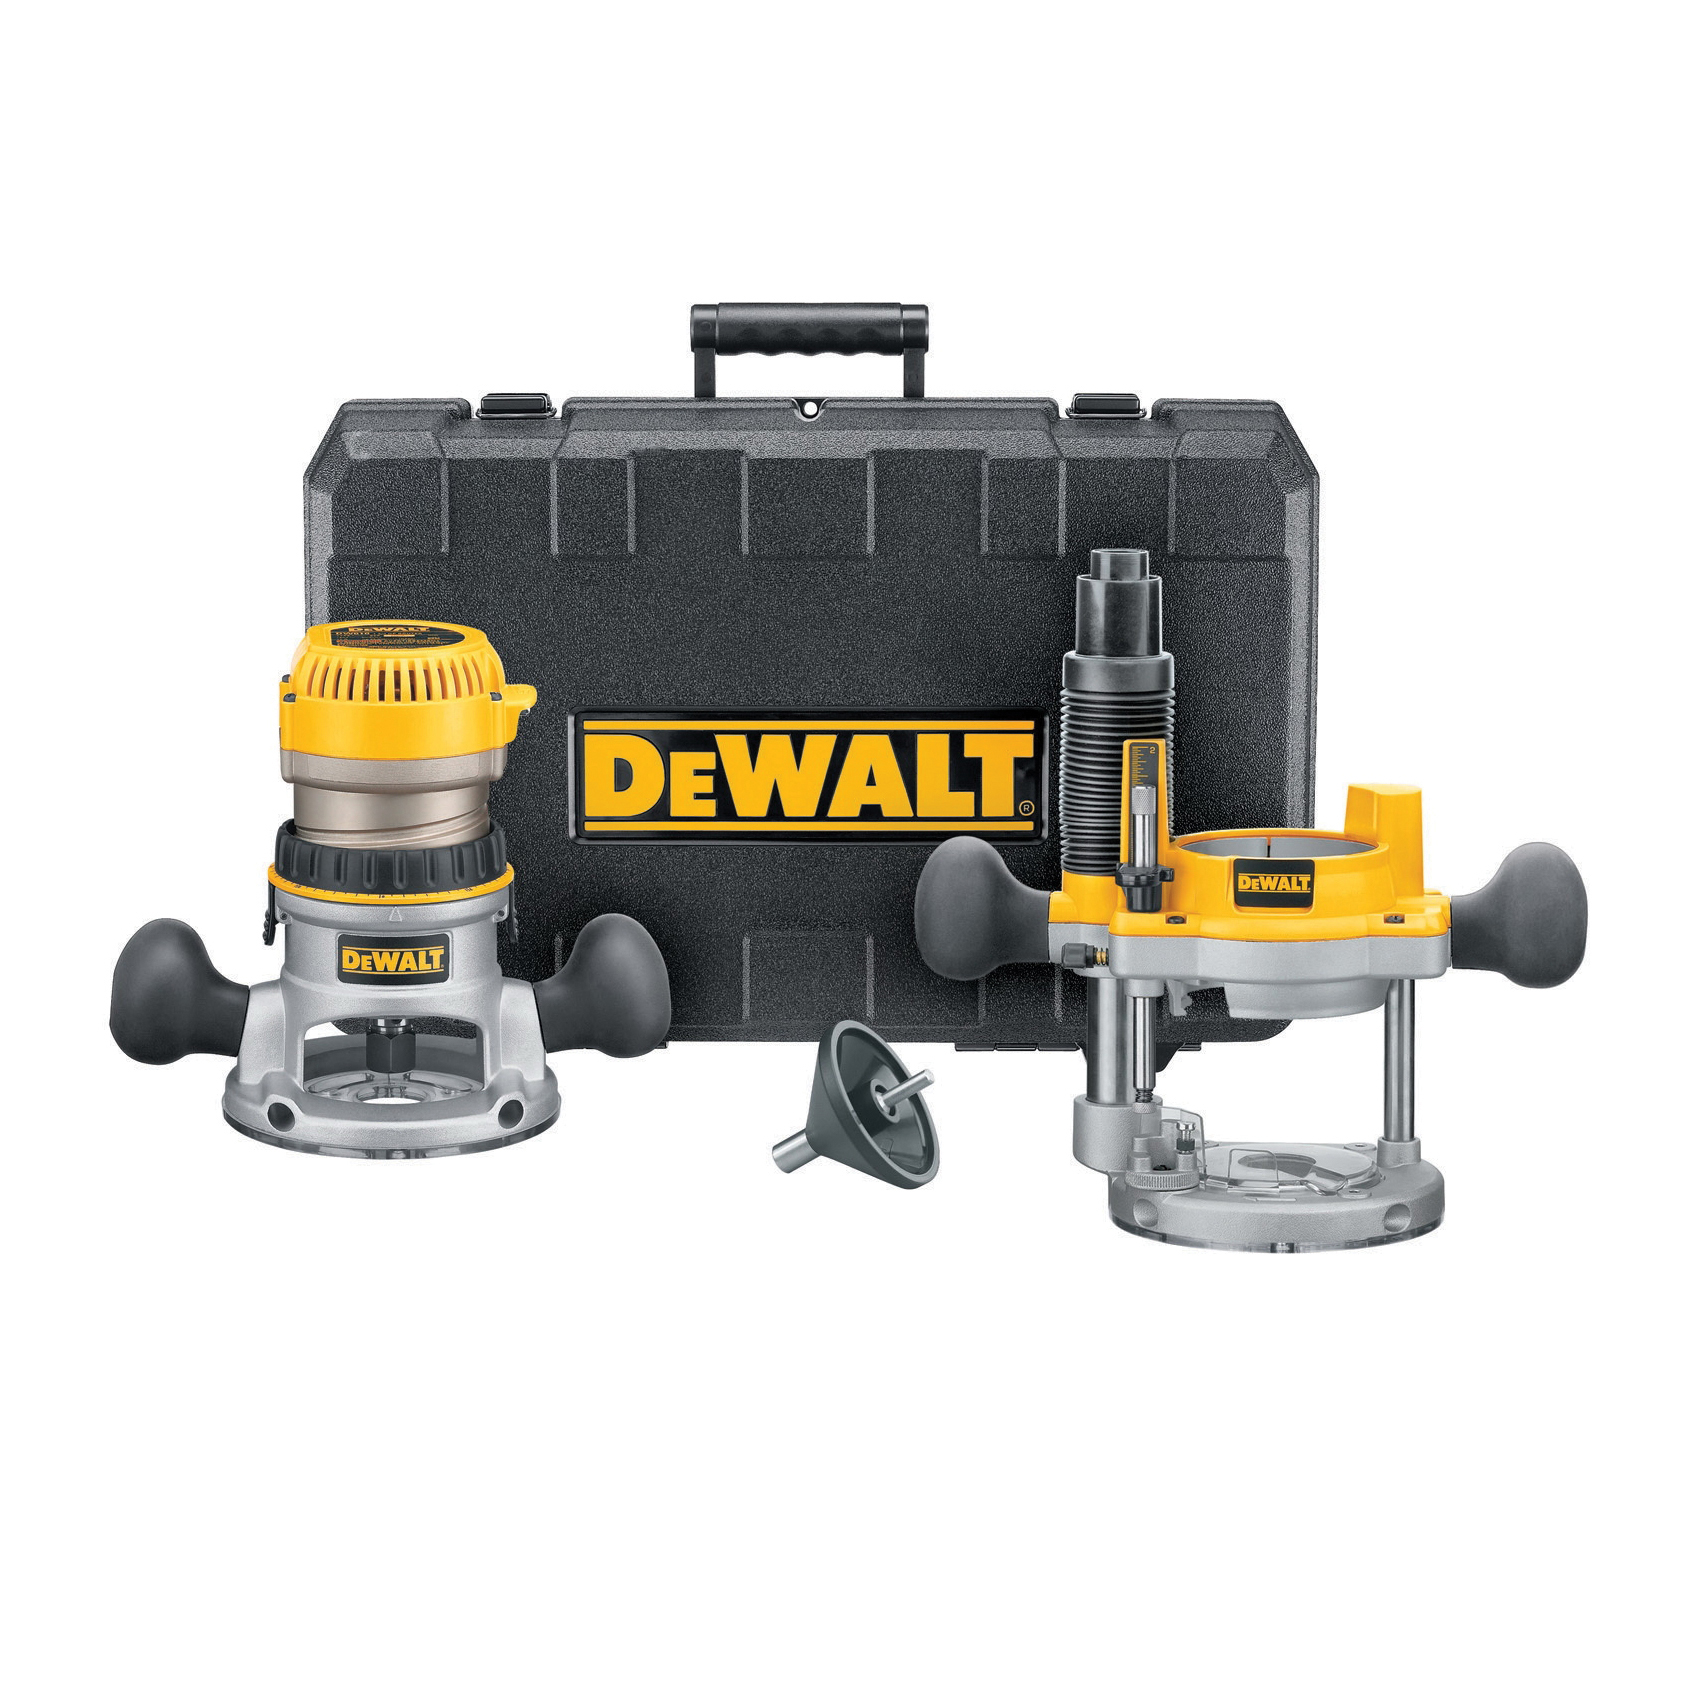 DeWALT® DW616PK Mid Size Fixed Base/Plunge Router Combo Kit, 1/4 in, 1/2 in Chuck, 24500 rpm, 1.75 hp, 120 VAC, Toggle Switch